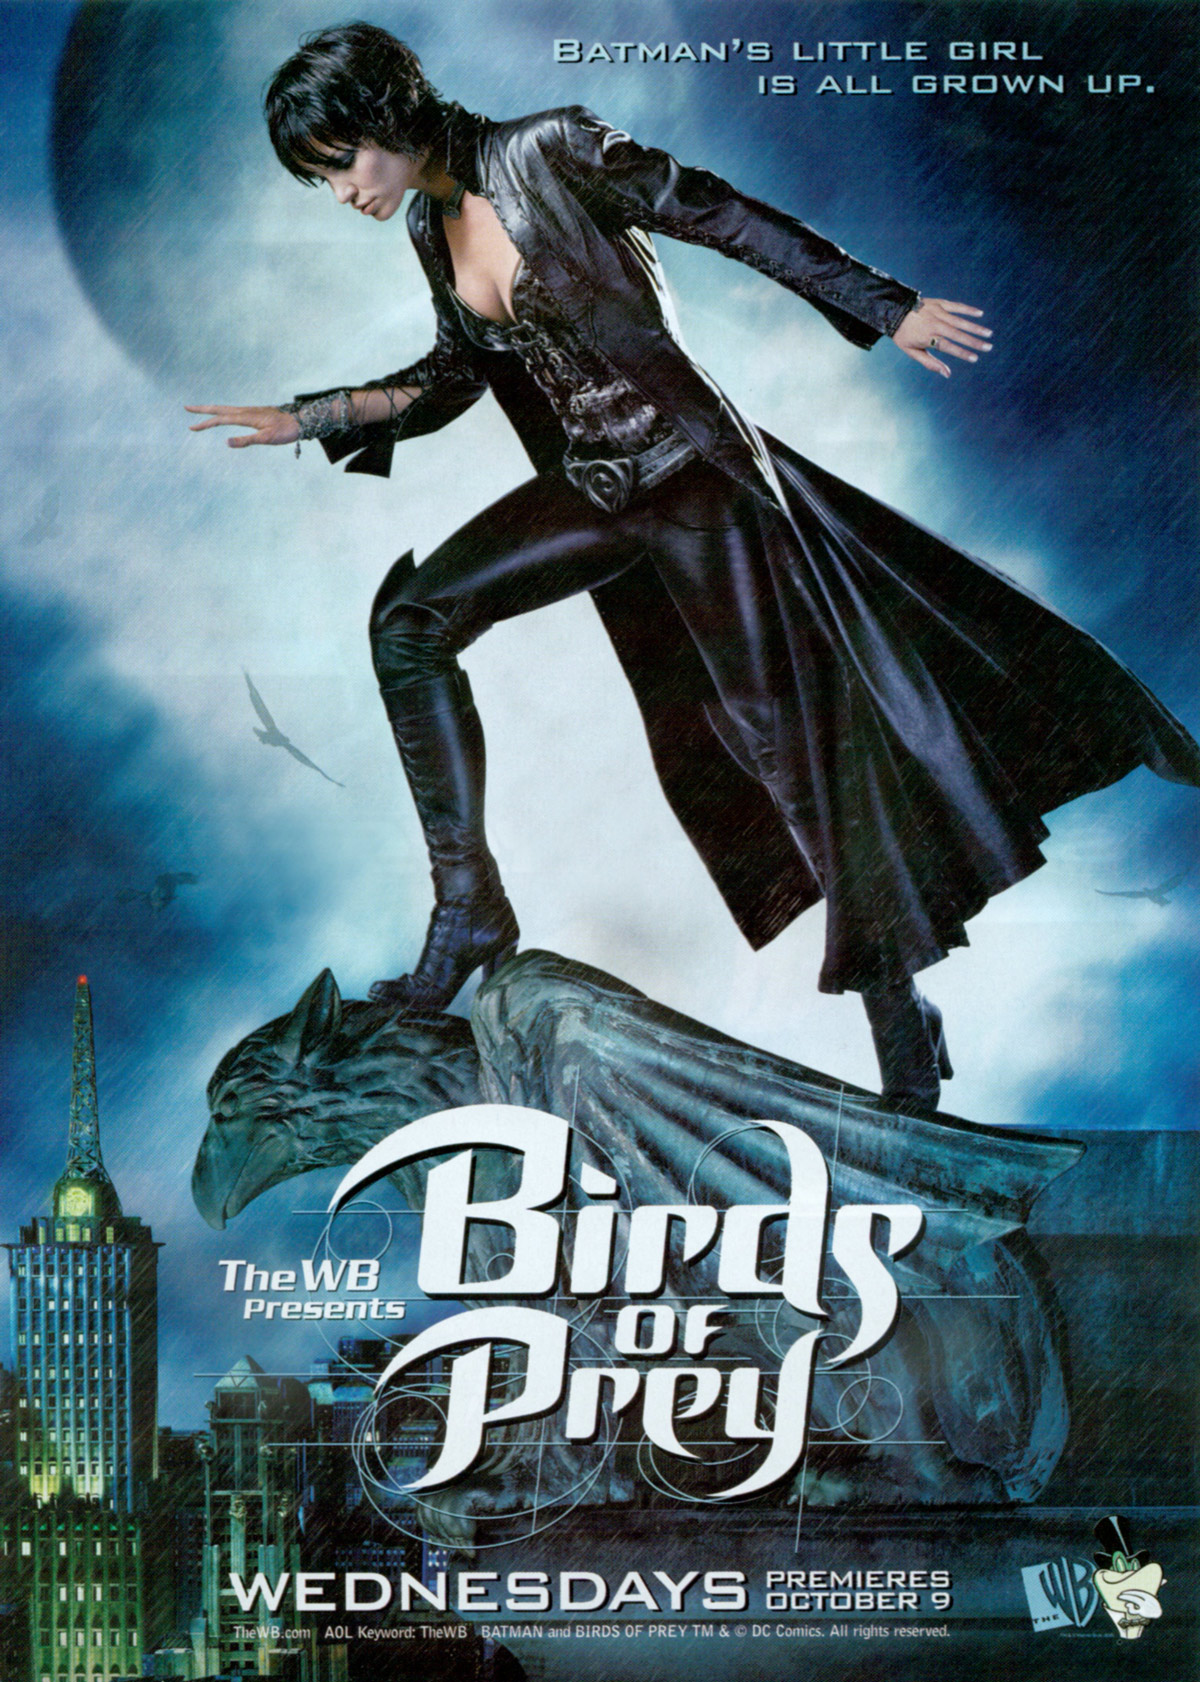 Birds of prey tv series - photo#3